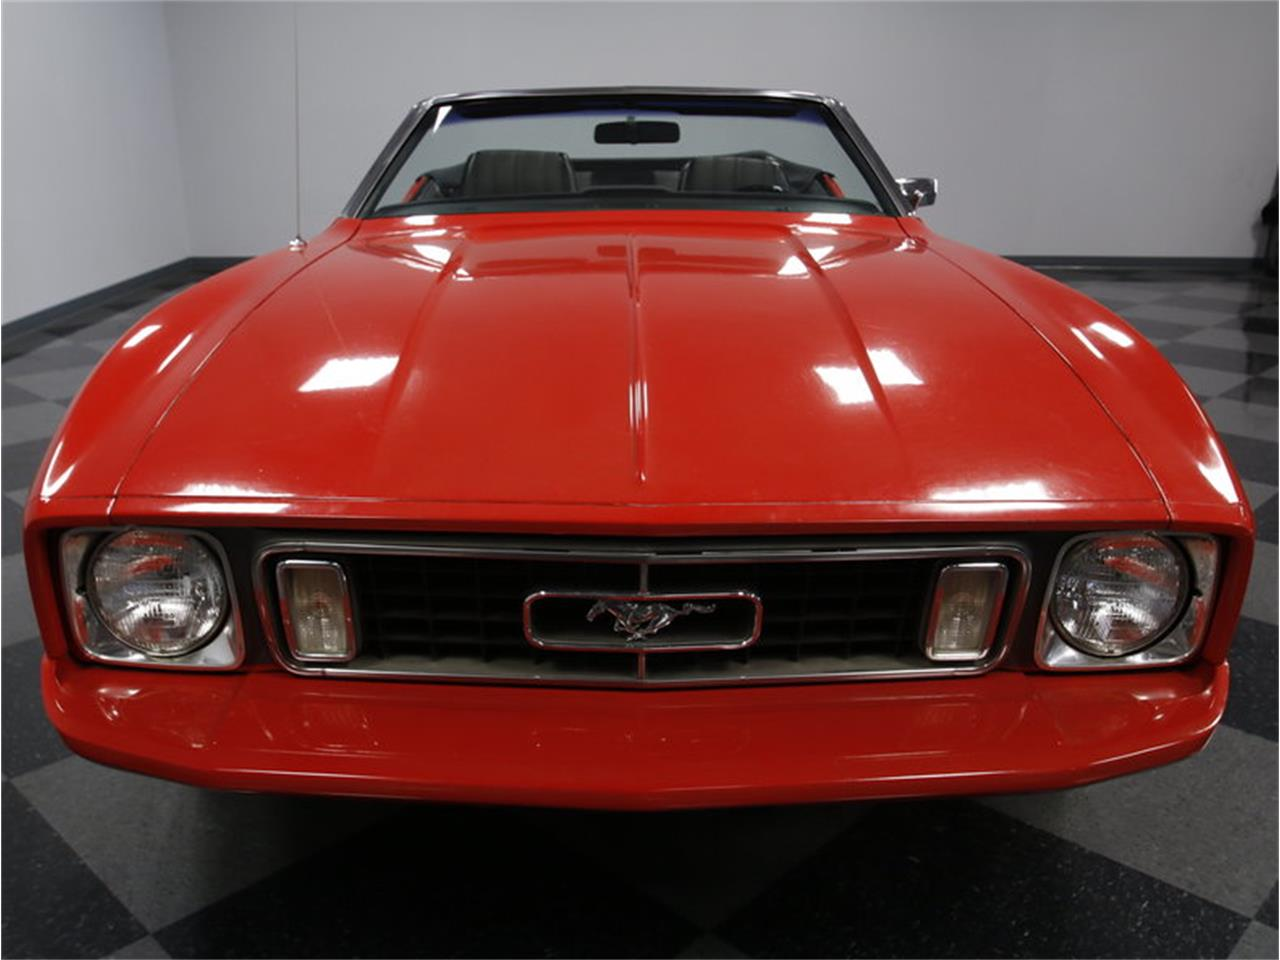 Large Picture of Classic 1973 Mustang 351 Cobra Jet located in North Carolina - $24,995.00 - KISW